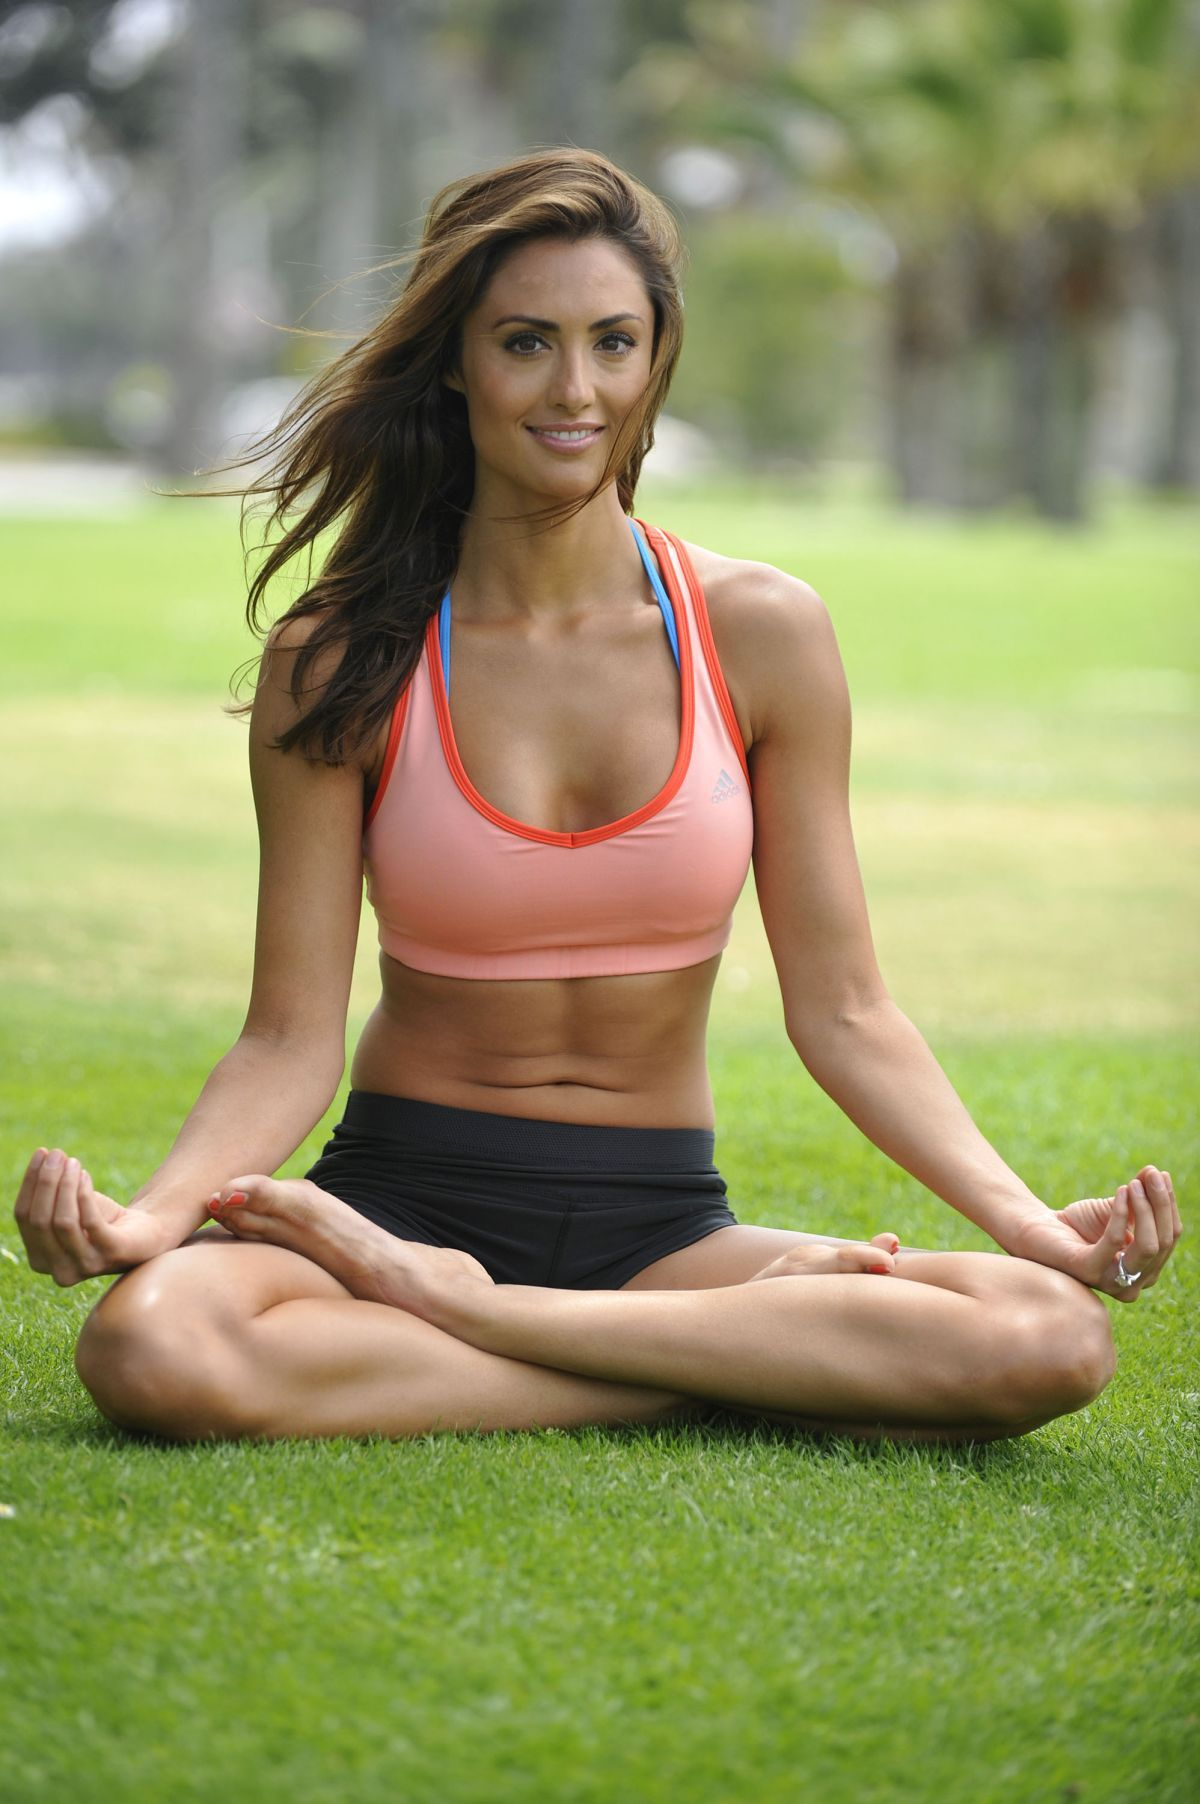 katie cleary hot